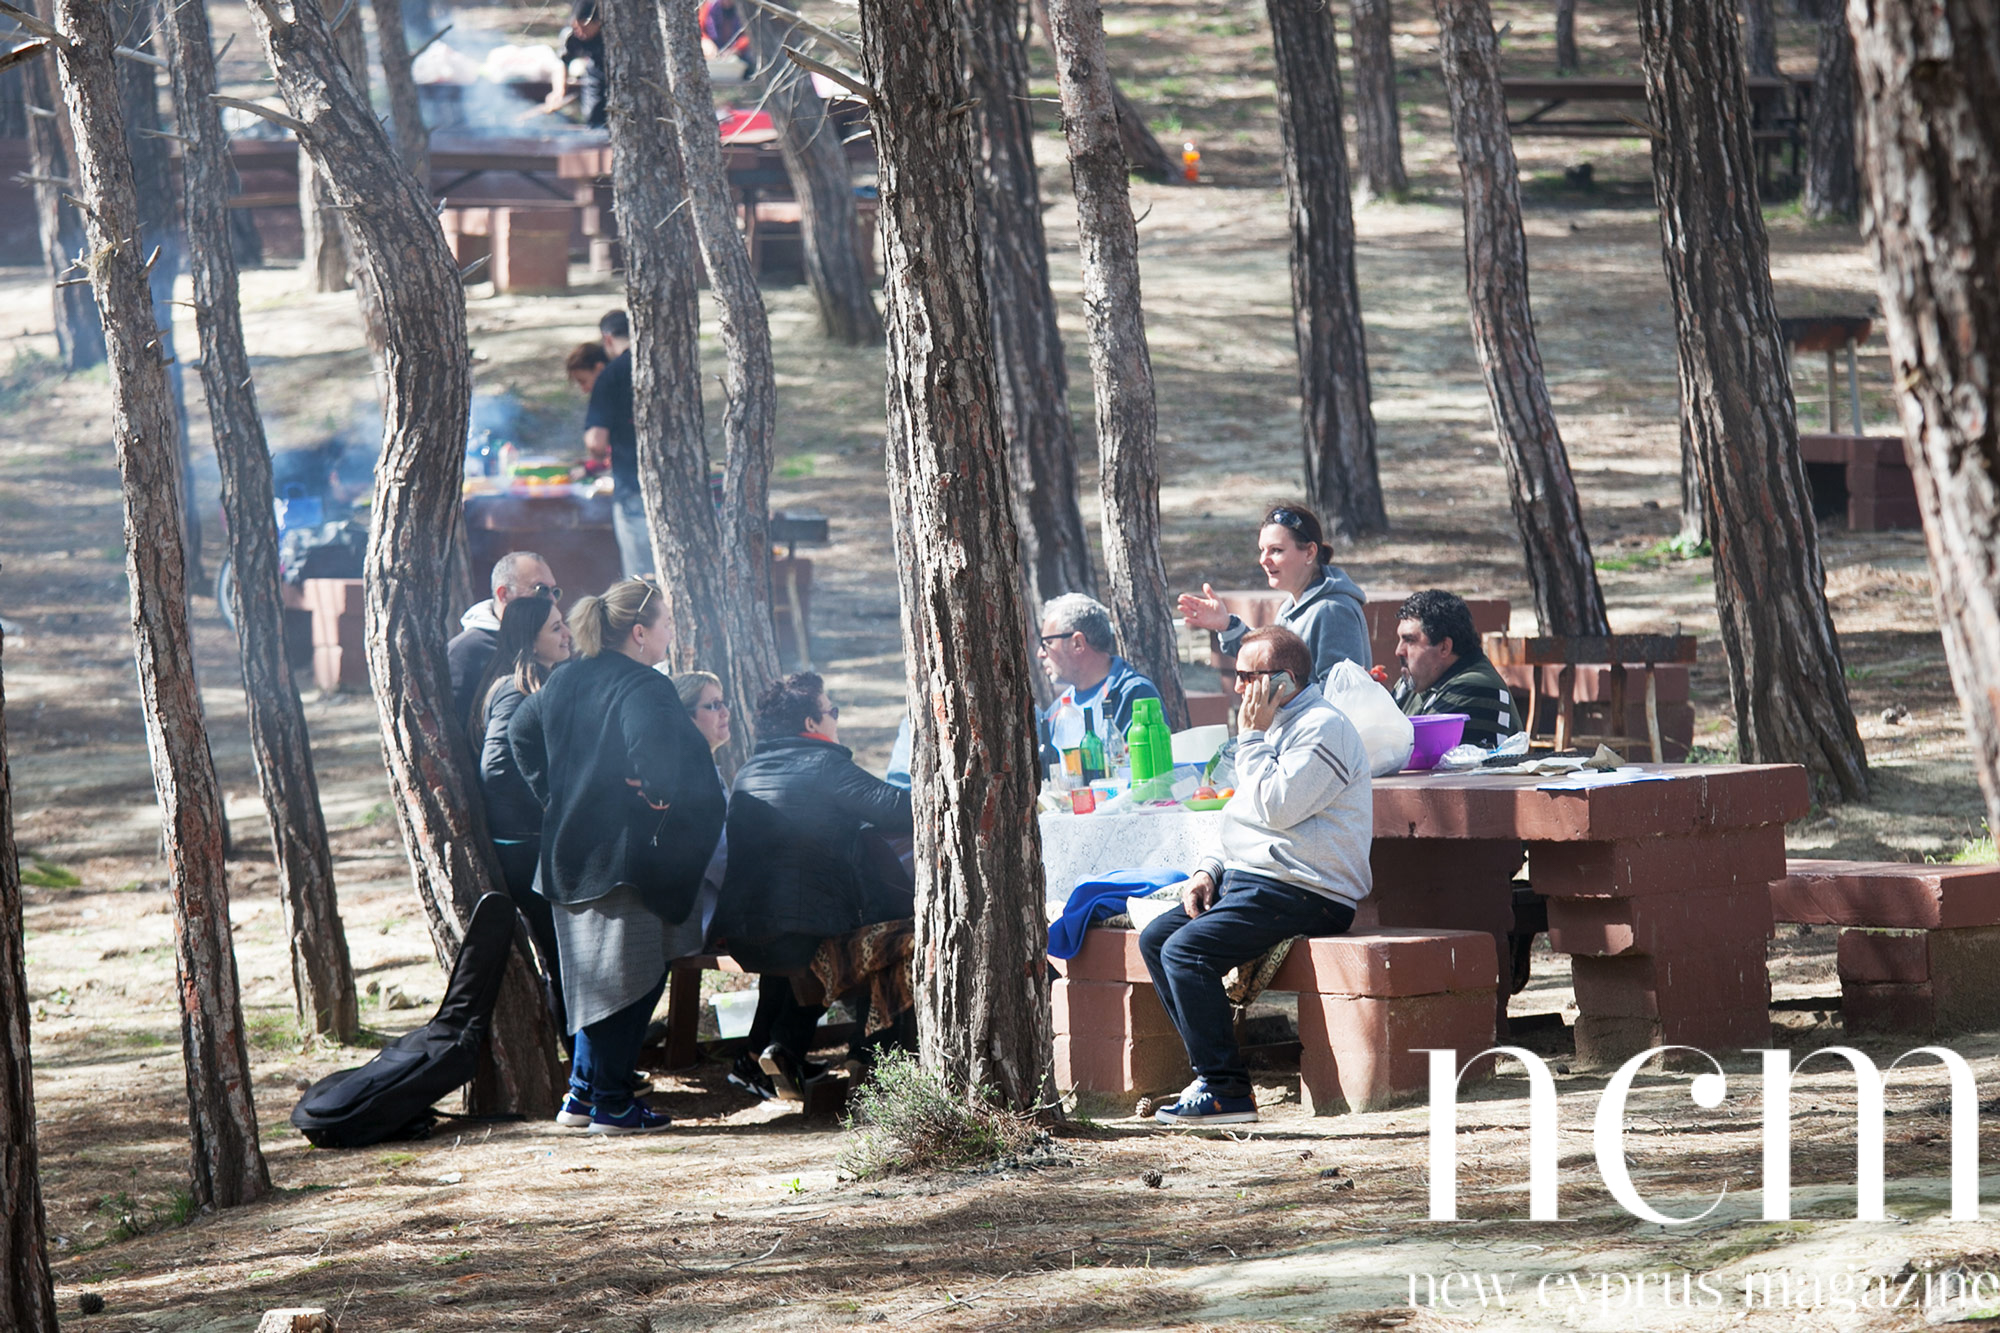 Bbq at picnic area during Kozan nature experience